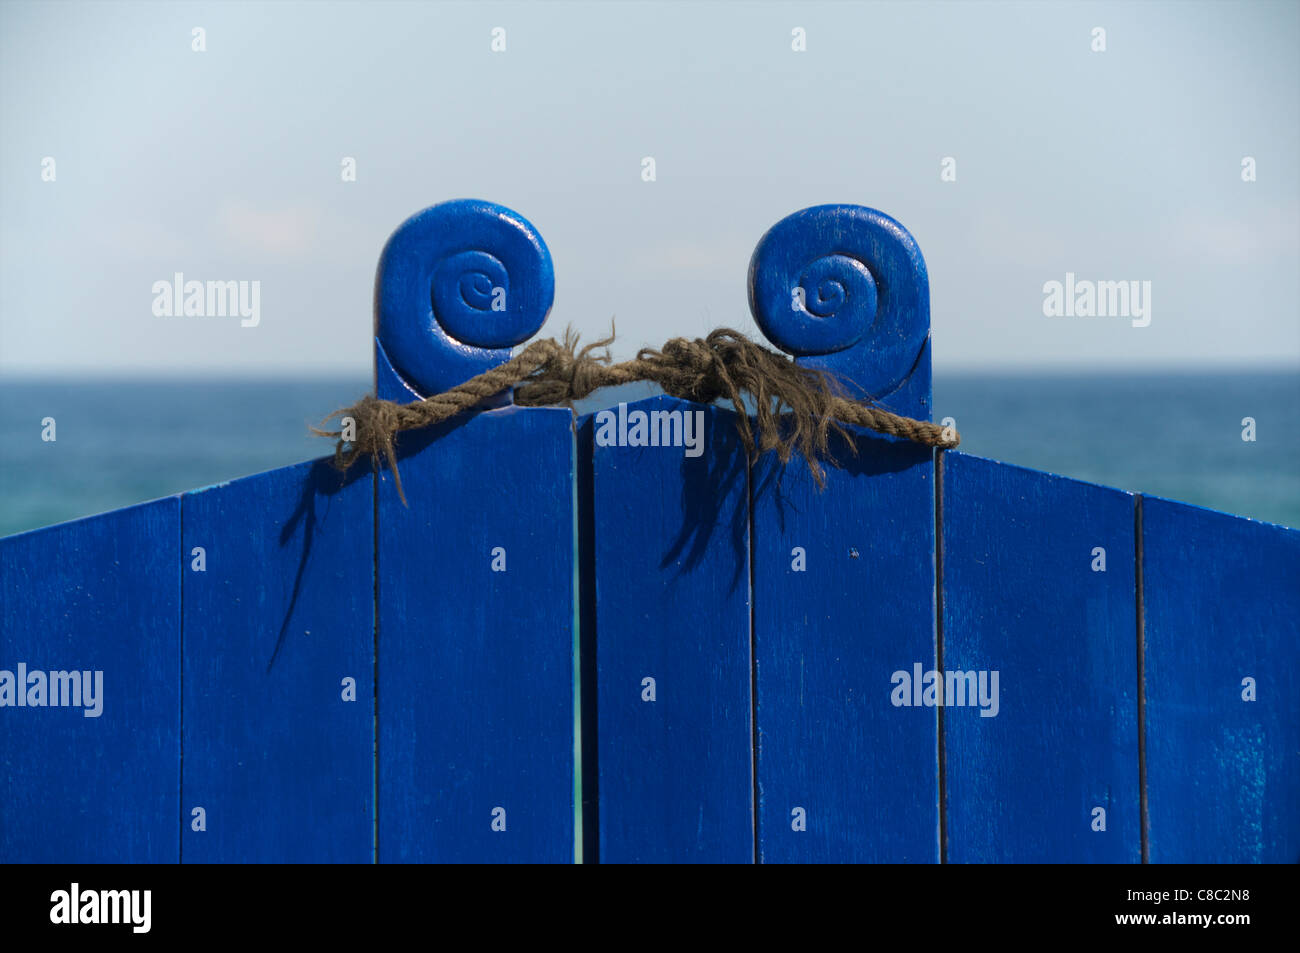 no entry to paradise, blue gates to aegean are tied - Stock Image